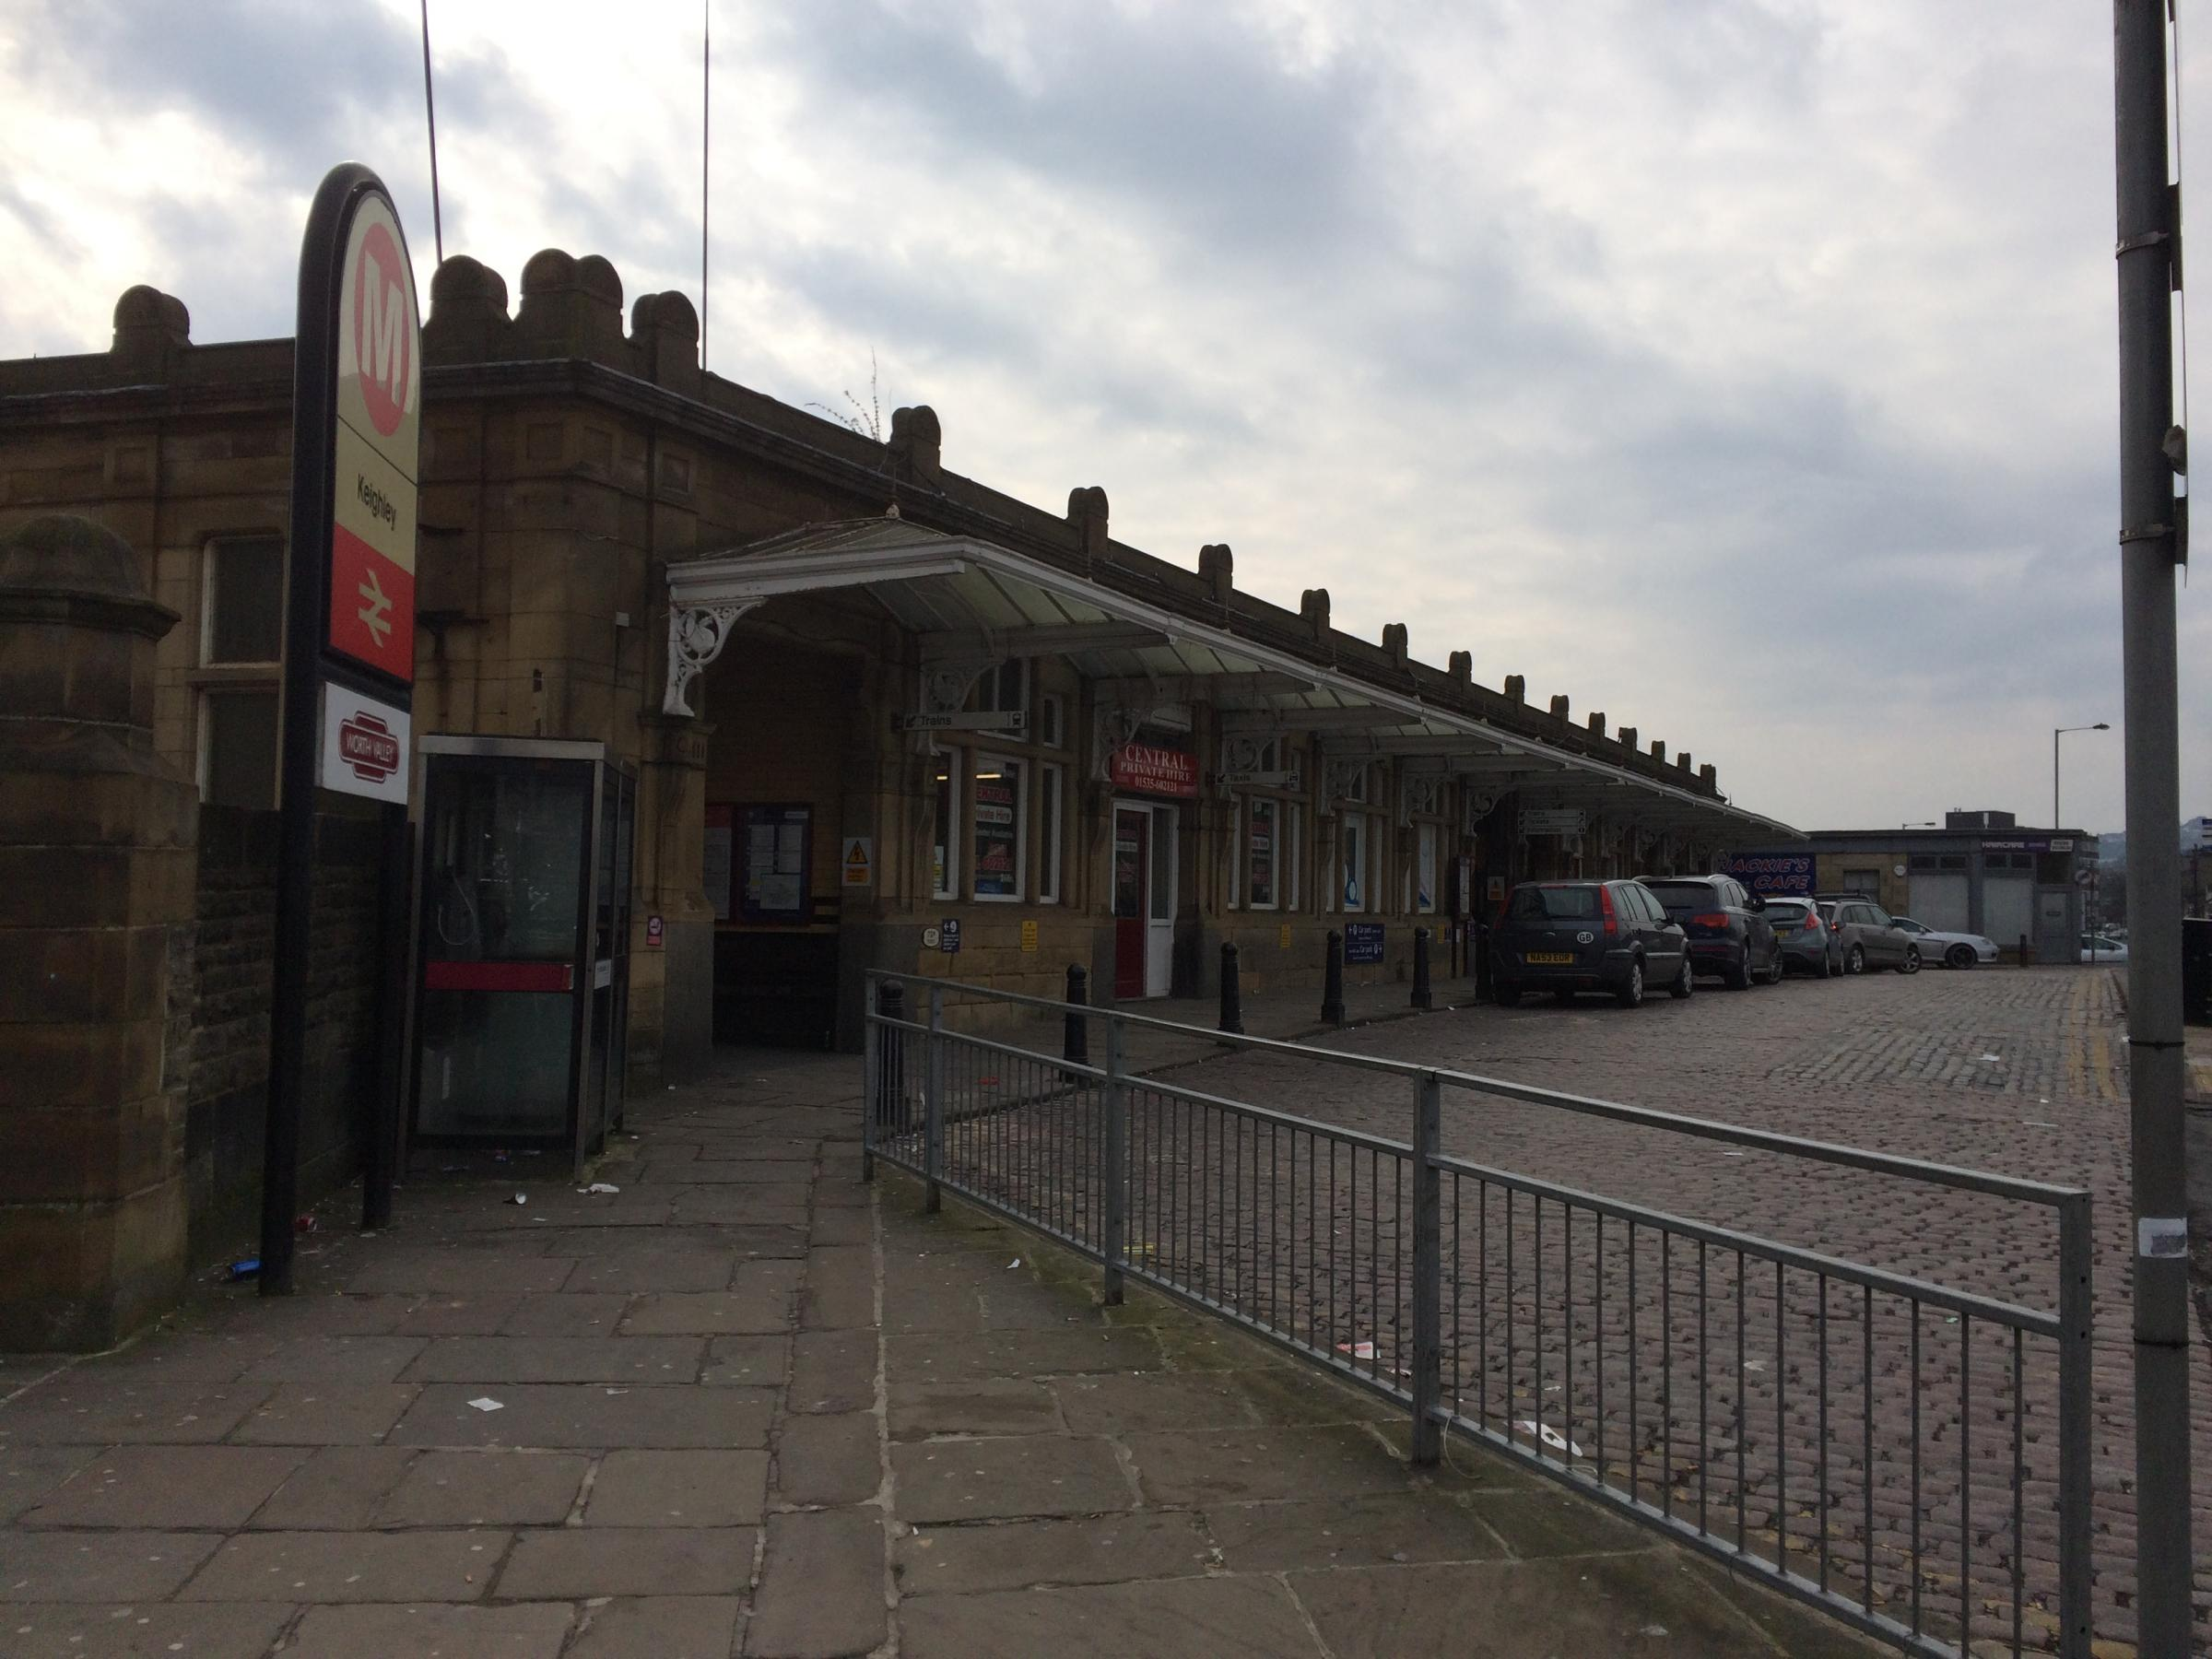 Rail station to get £4m facelift